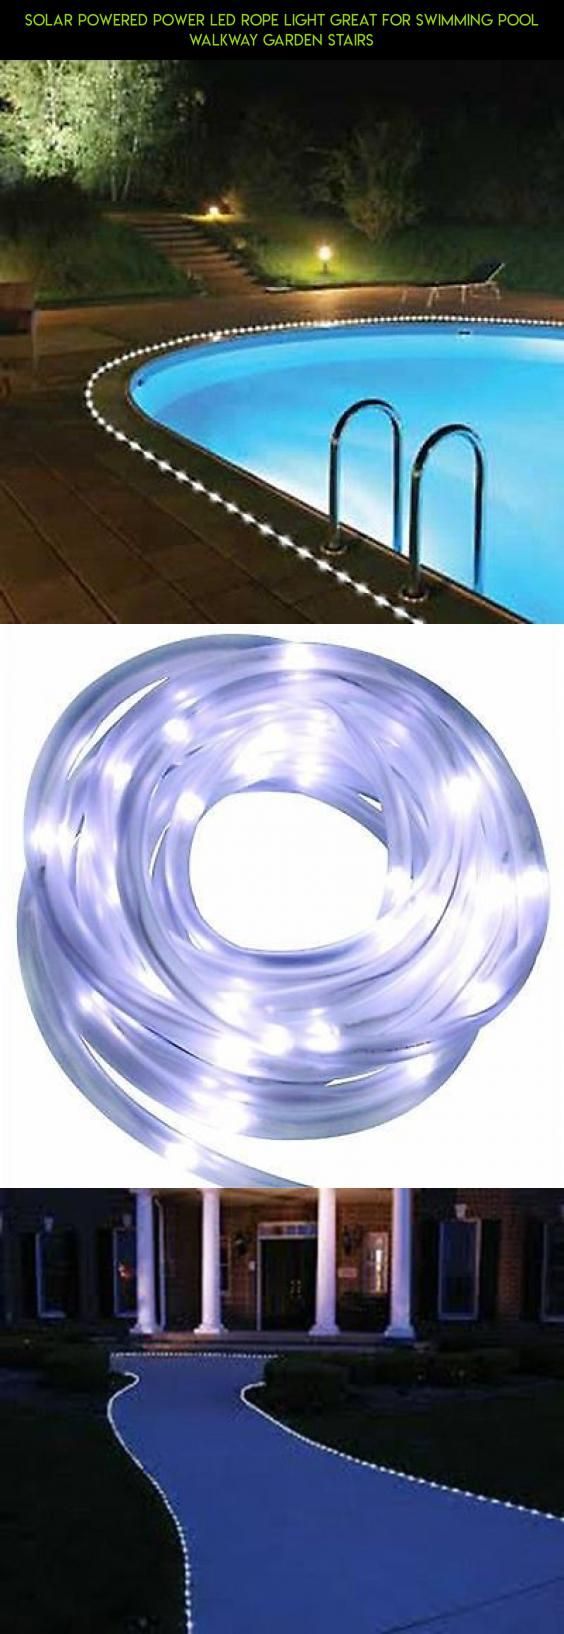 Solar powered power led rope light great for swimming pool walkway solar powered power led rope light great for swimming pool walkway garden stairs products aloadofball Images